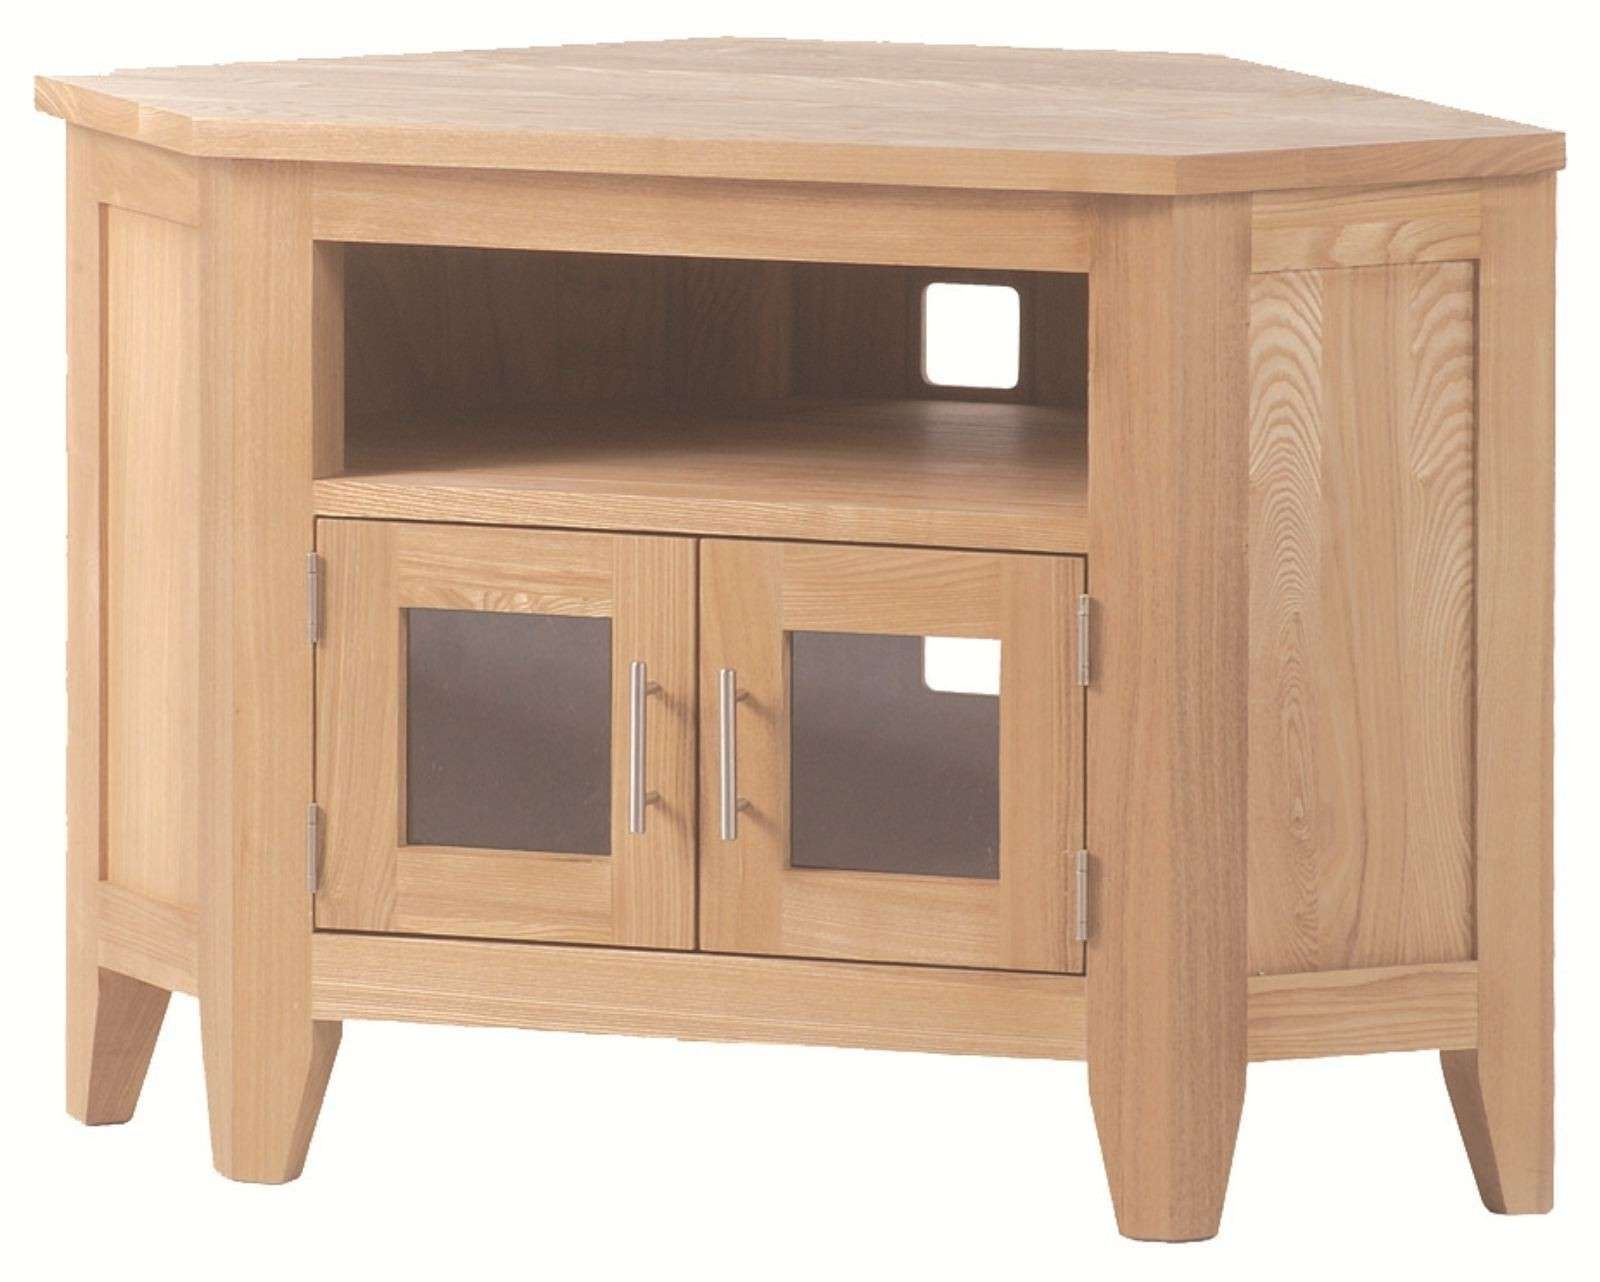 Wooden Corner Tv Stand With Small Cabinet Doors And Silver Handle Throughout Small Corner Tv Cabinets (View 20 of 20)